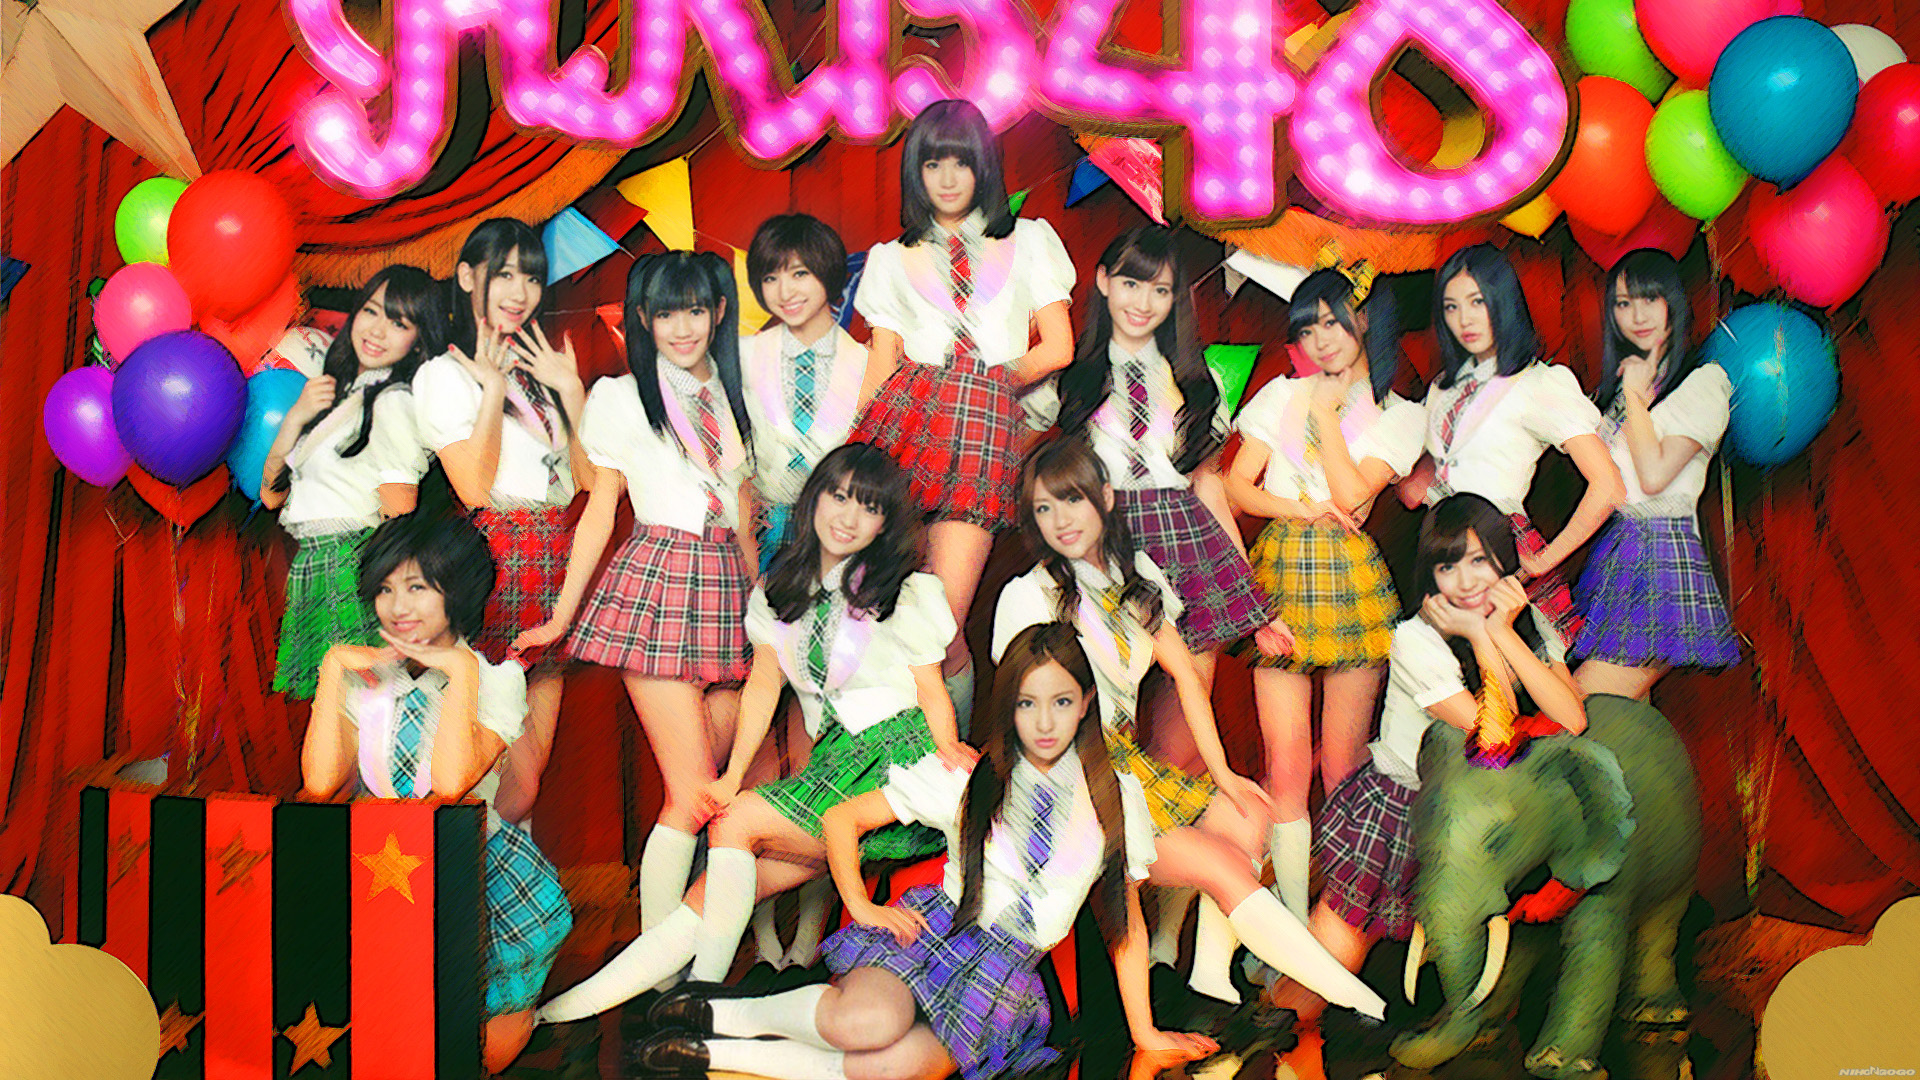 Beautiful Girl Hand Wallpaper Akb 48 School Party Themes Music